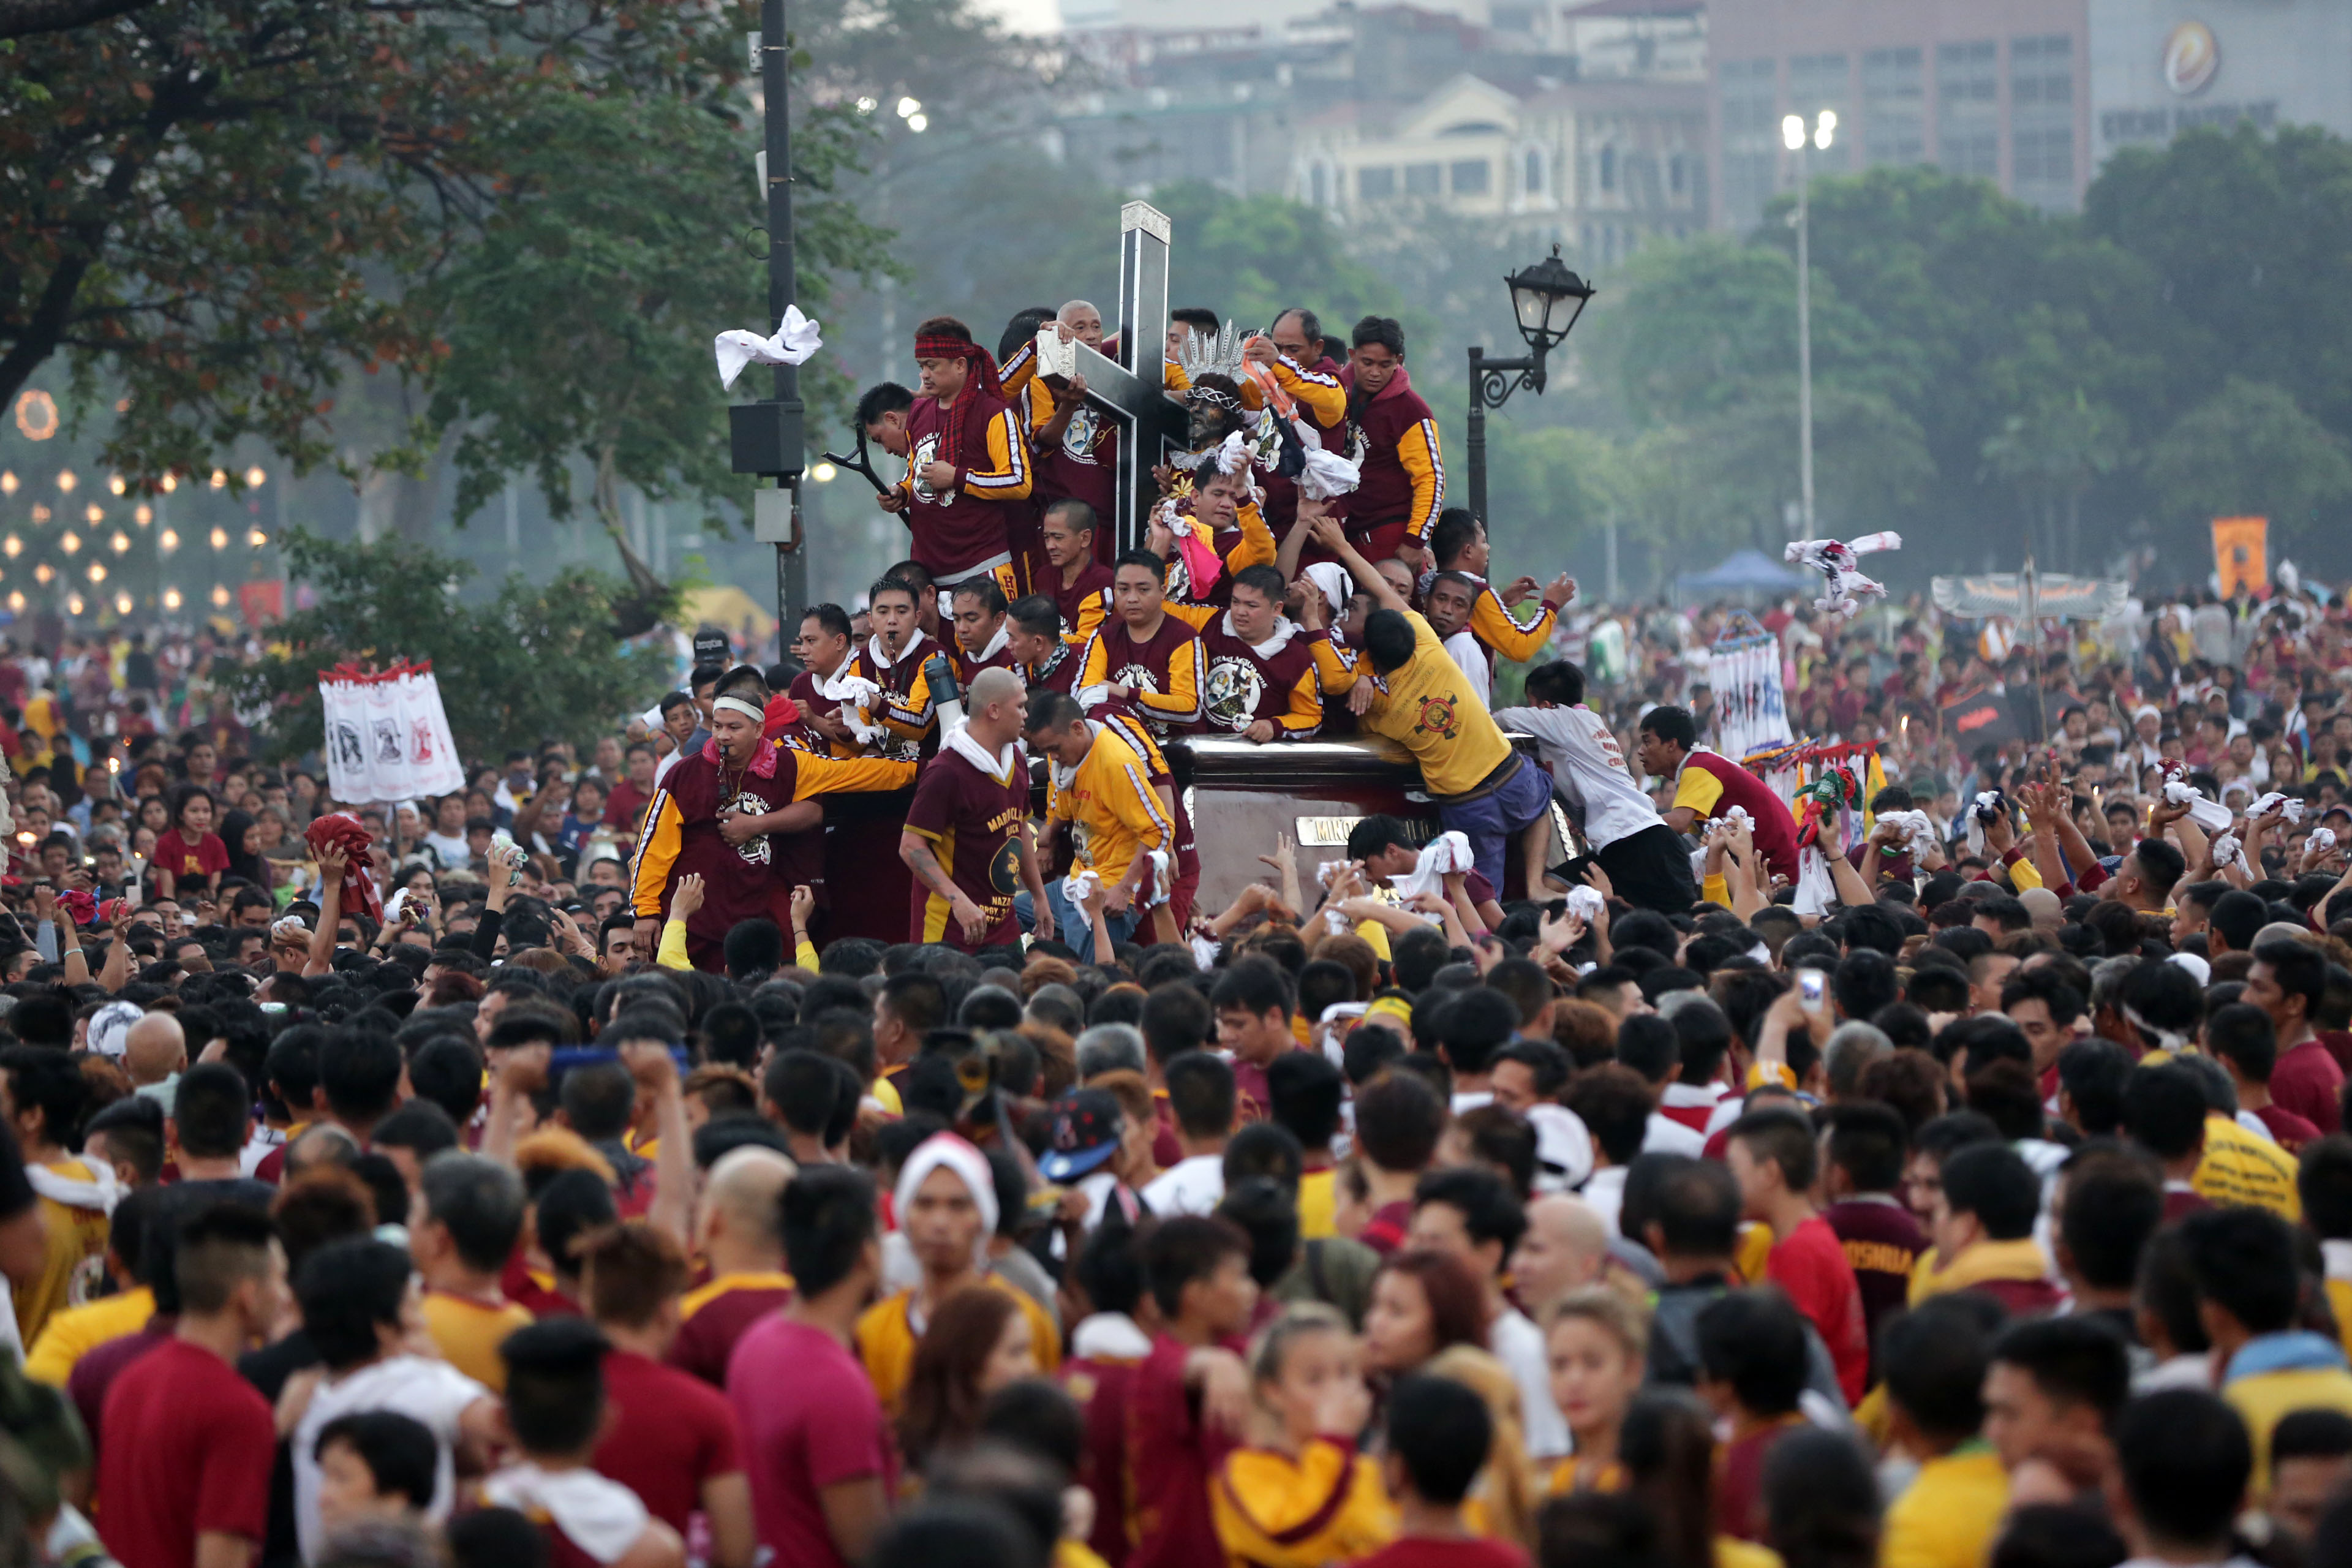 DEVOTION. Devotees try to get near the carriage carrying the image of Jesus of the Black Nazarene as the annual Traslacion starts at the Quirino Grandstand in Manila on Saturday, January 9, 2015. Photo by Ben Nabong/Rappler